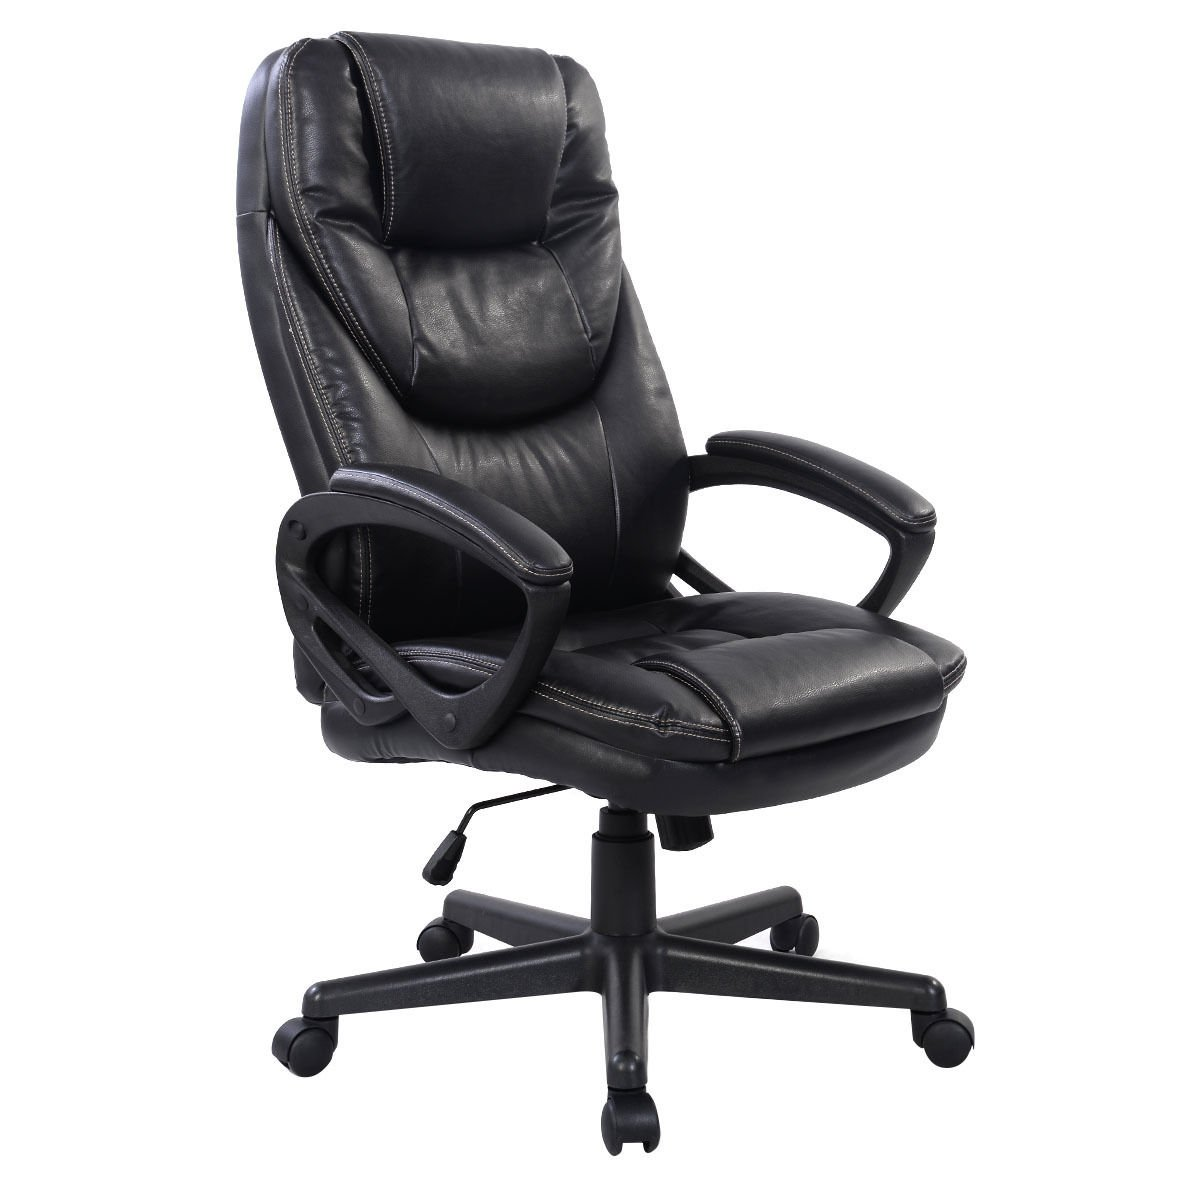 amazoncom giantex pu leather high back ergonomic office chair black kitchen u0026 dining - Leather Office Chairs